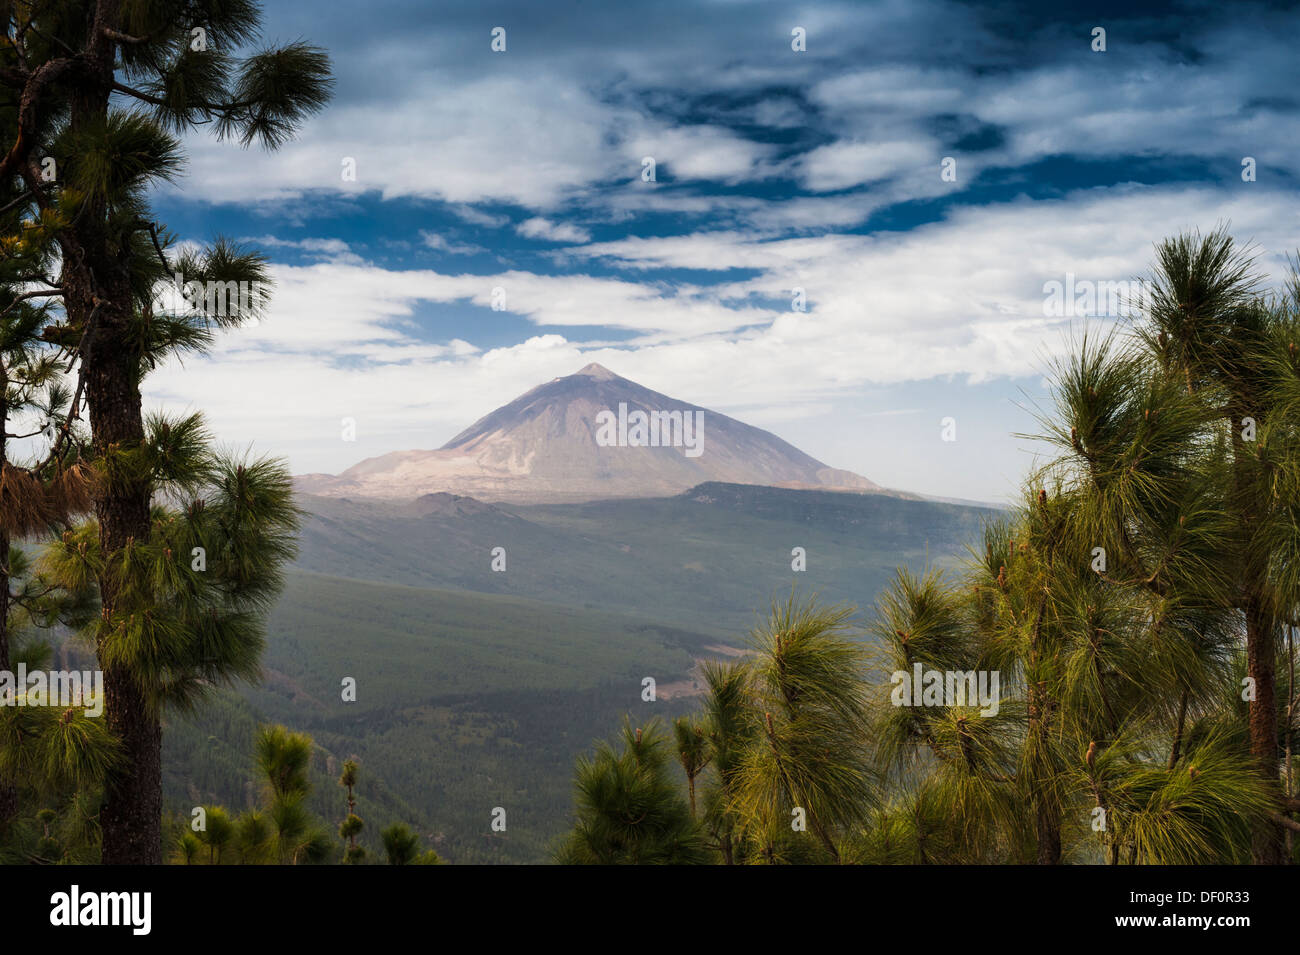 The huge stratovolcano of El Teide, across the Orotava Valley, from Mirador de Chipeque, Tenerife, - Stock Image